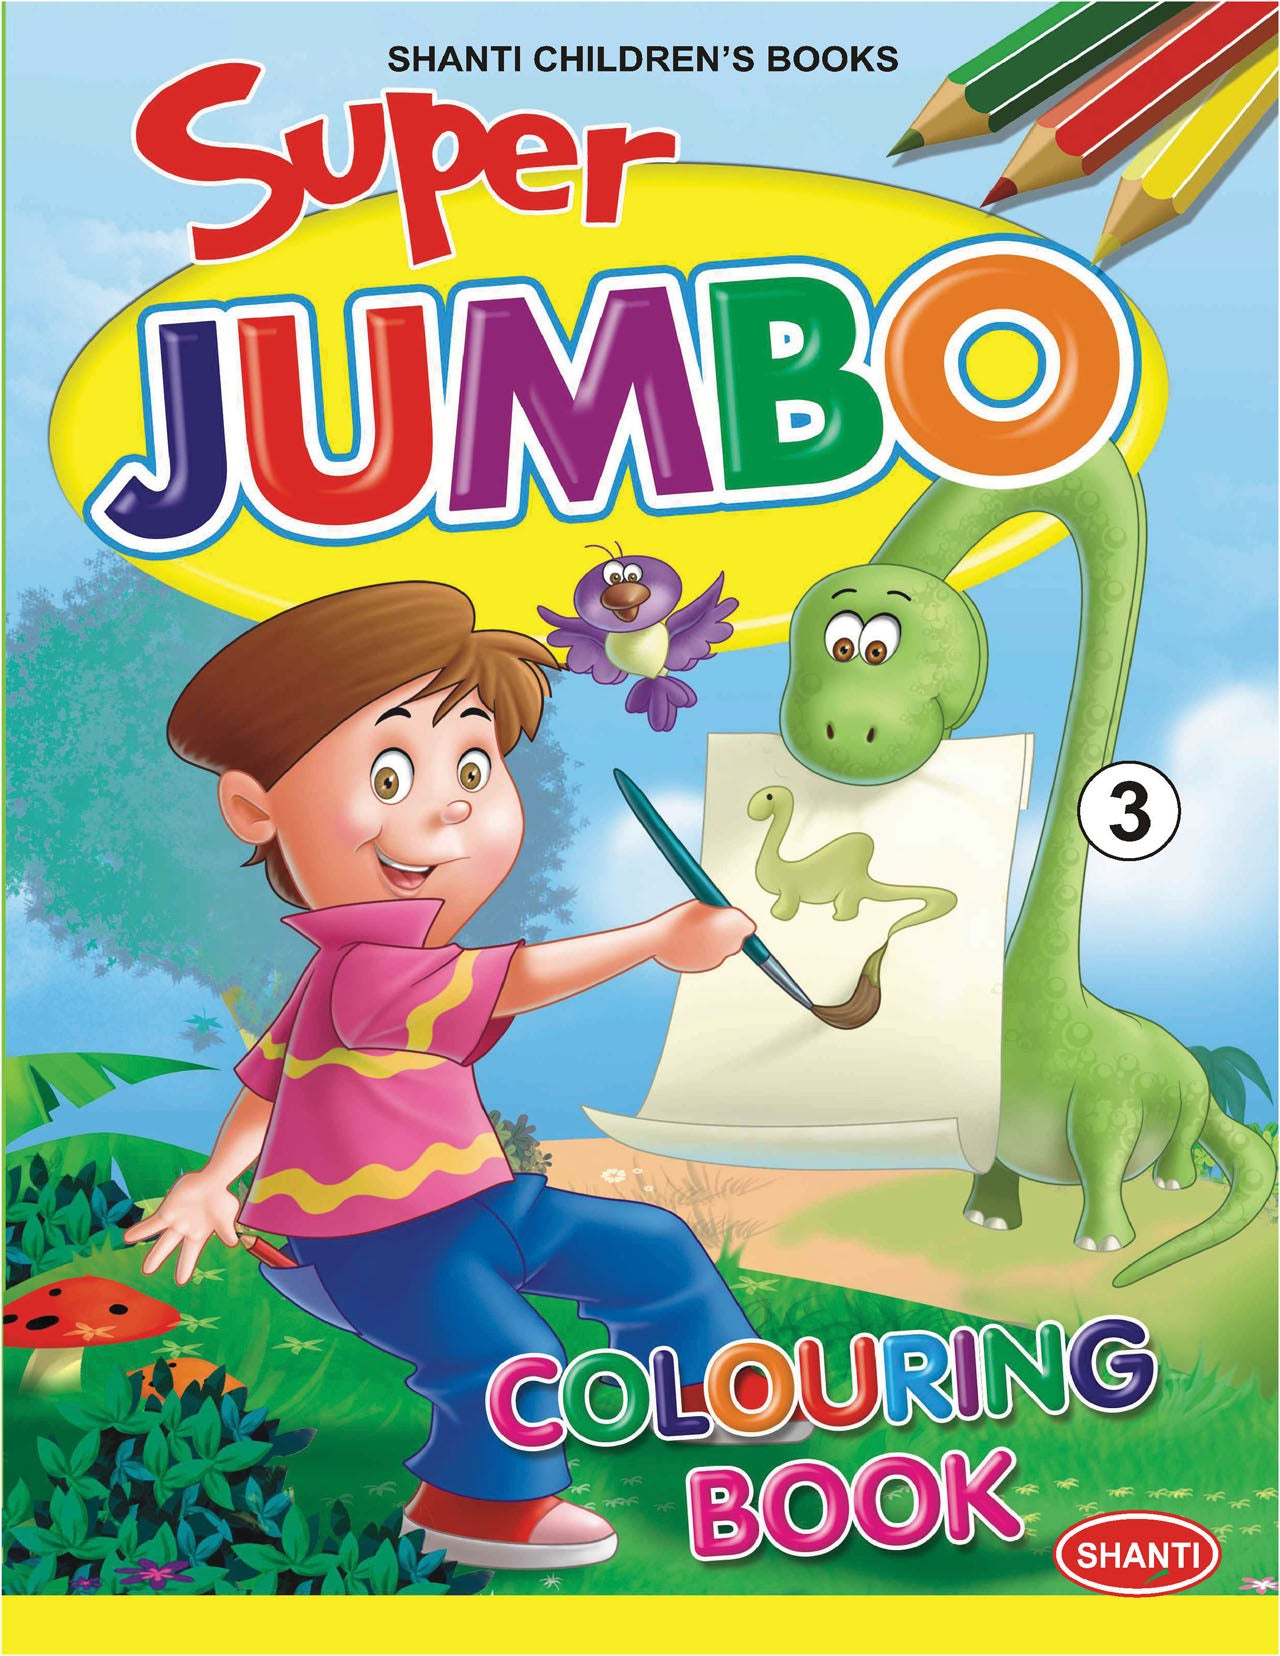 Colouring Book for Kids Super Jumbo Colouring Book 3 Ekas